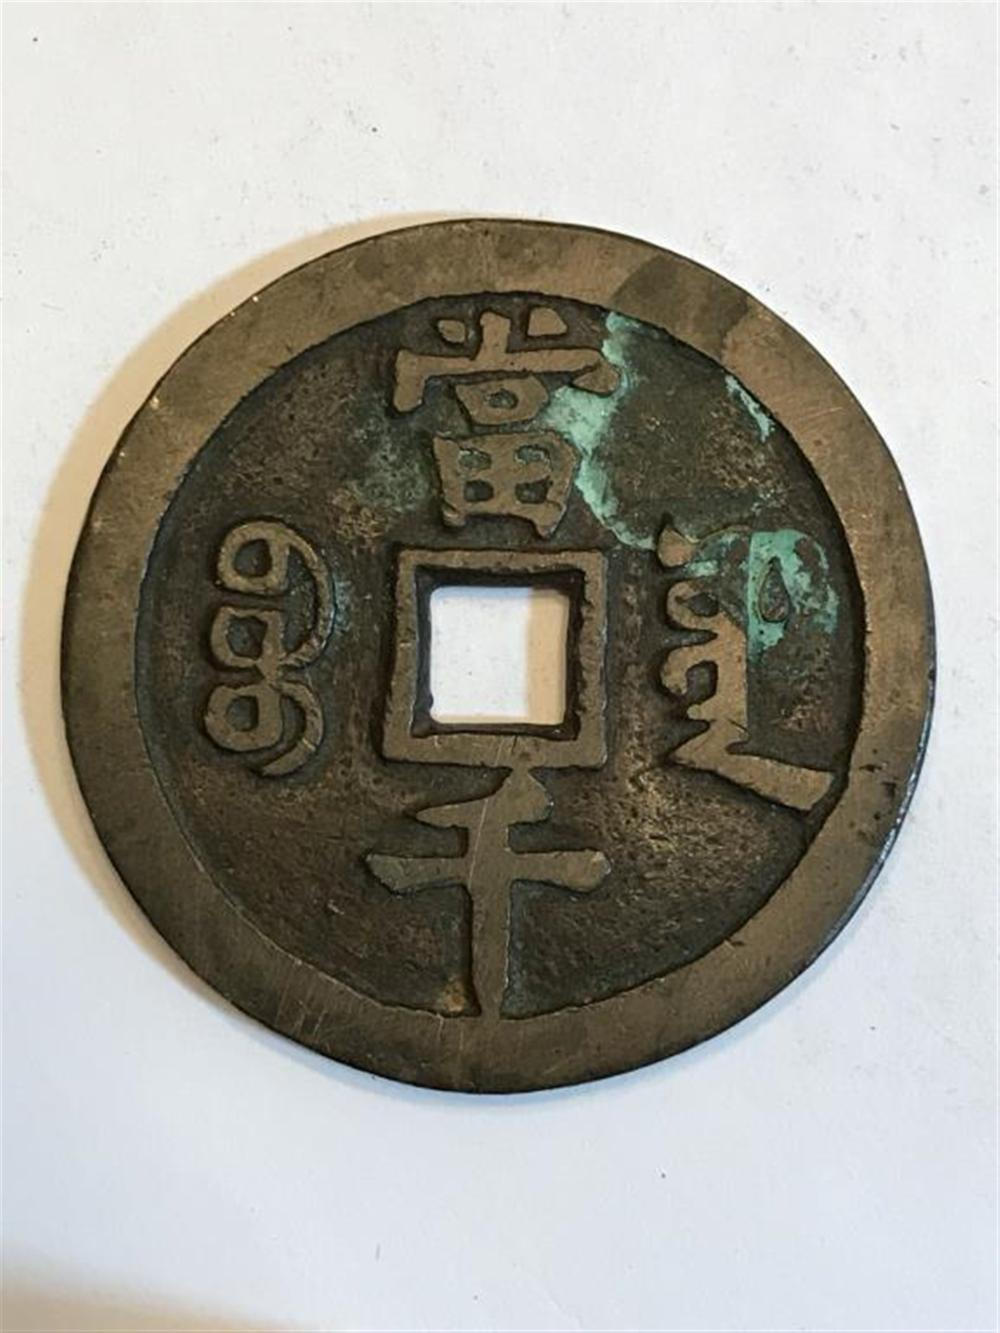 coin with square hole in center